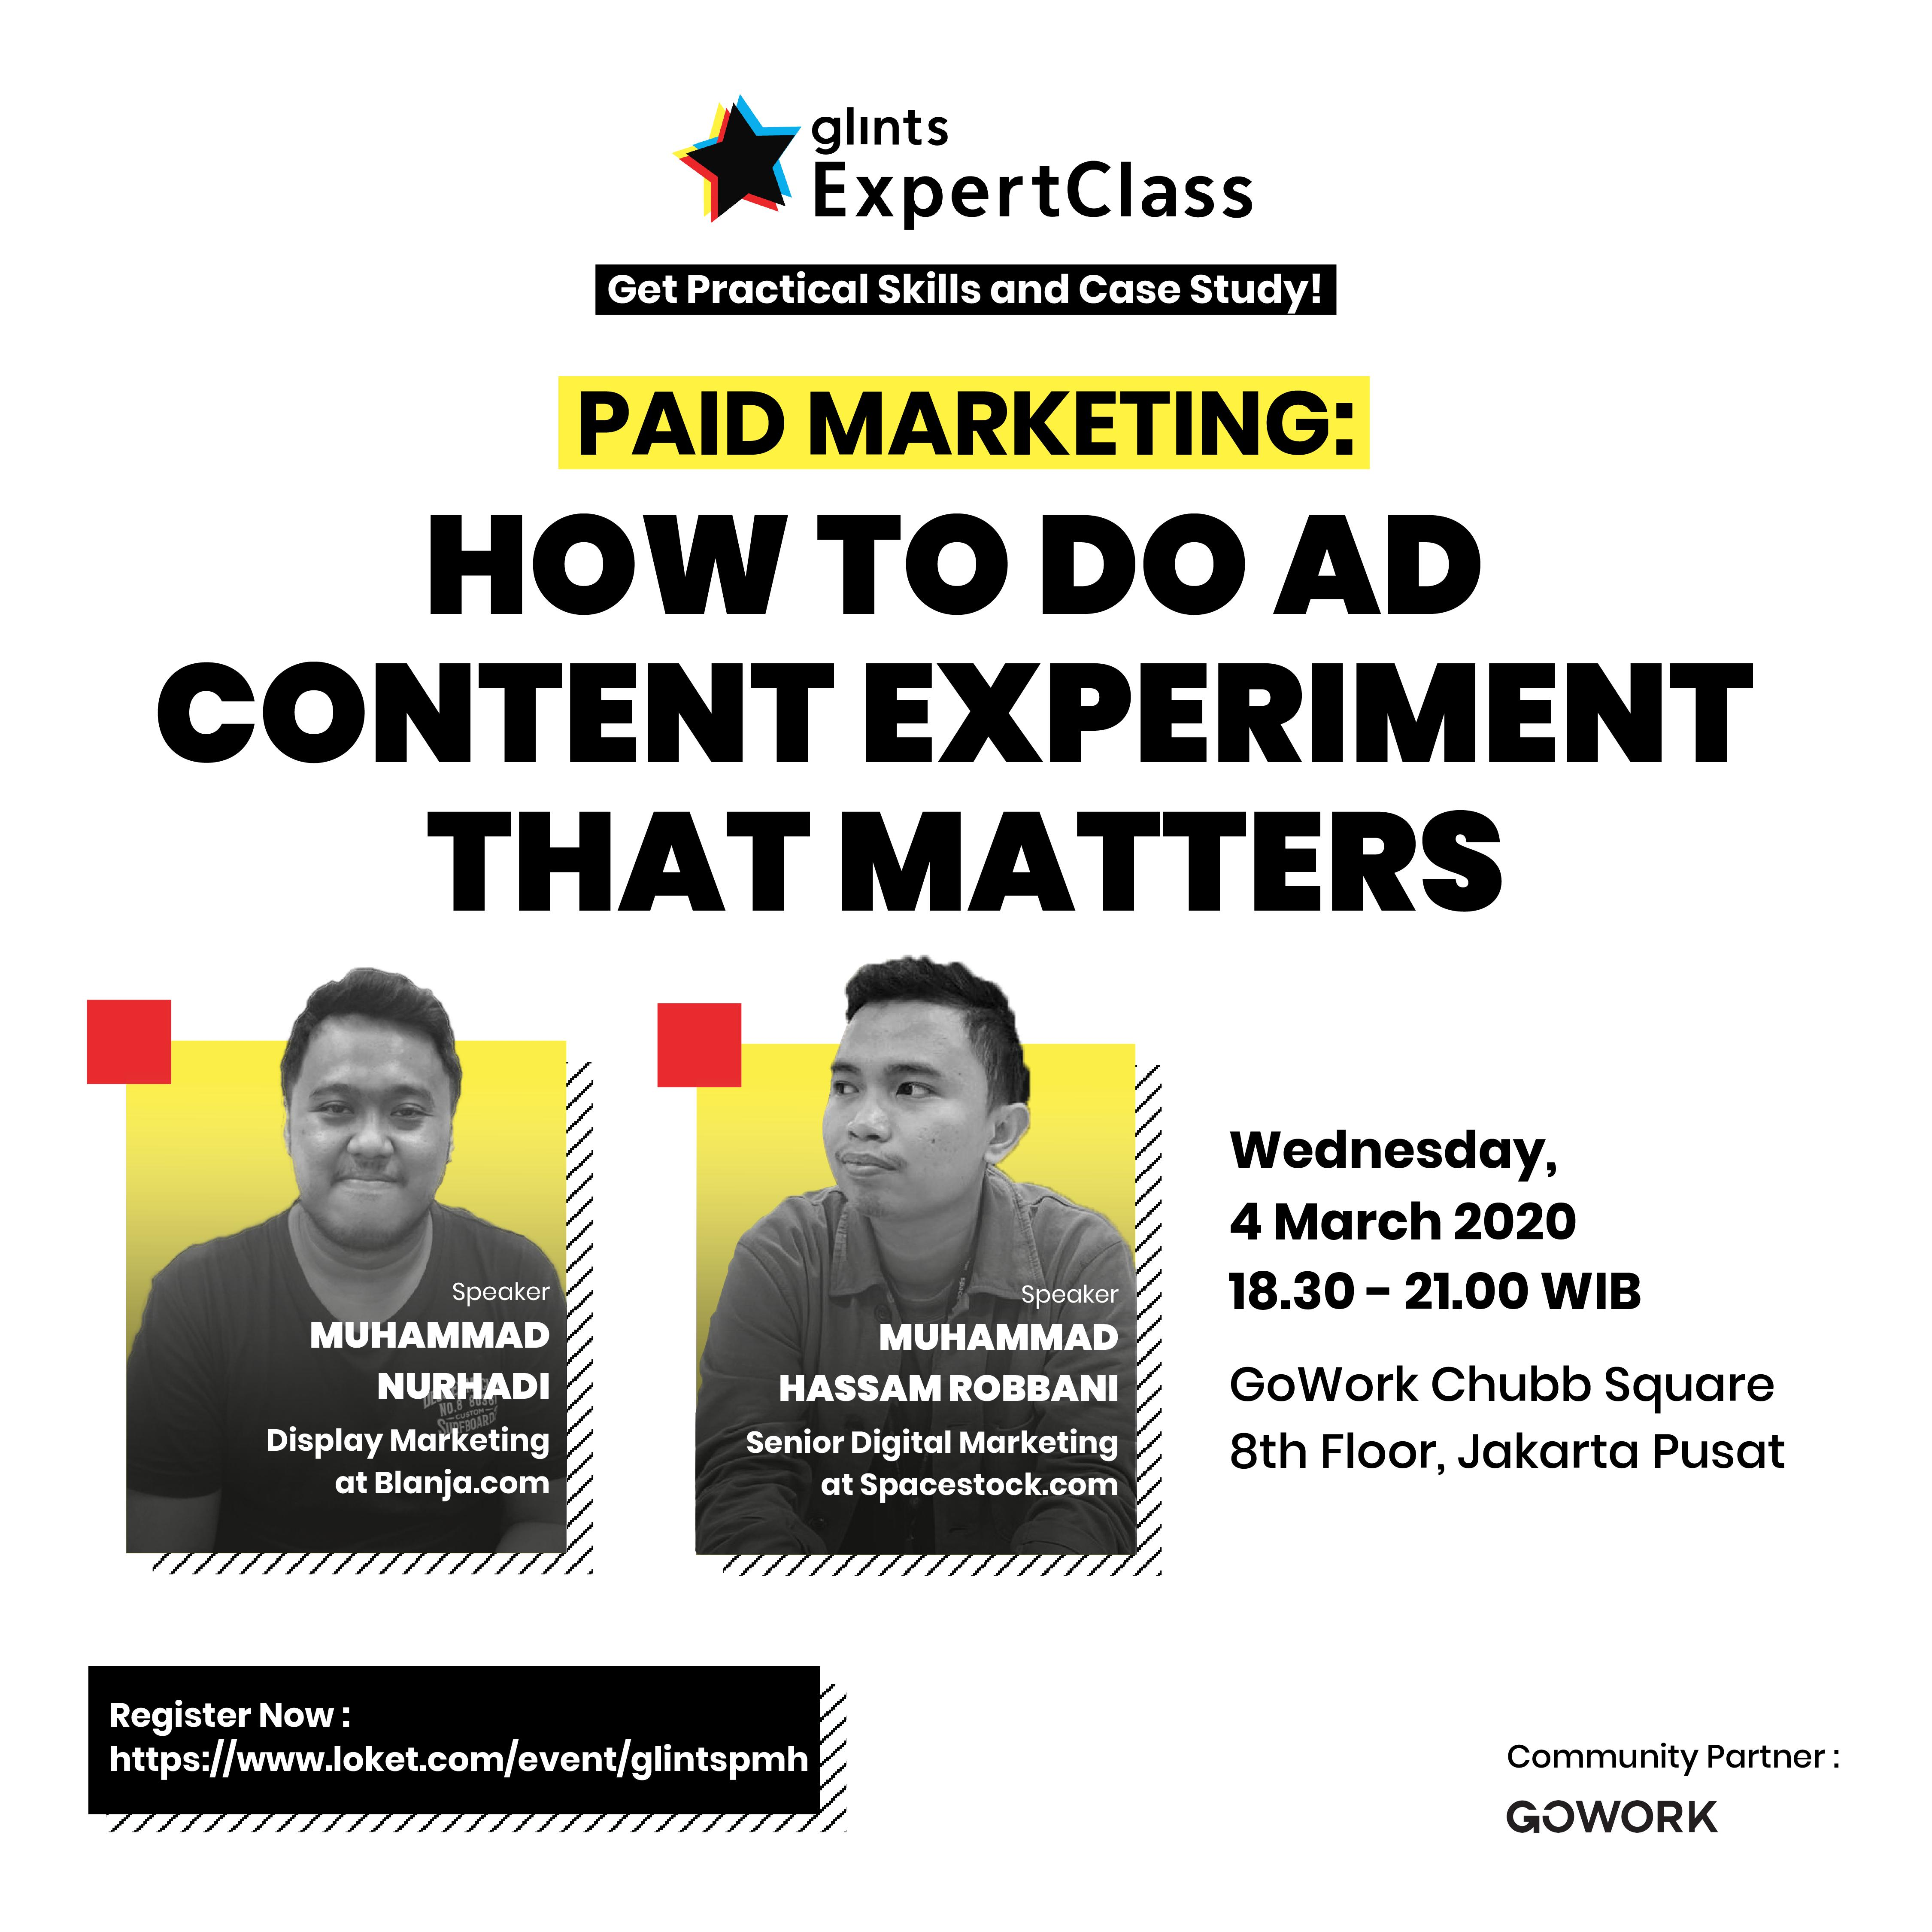 Glints Expert Class - Paid Marketing : How To Do Ad Content Experiment That Matters